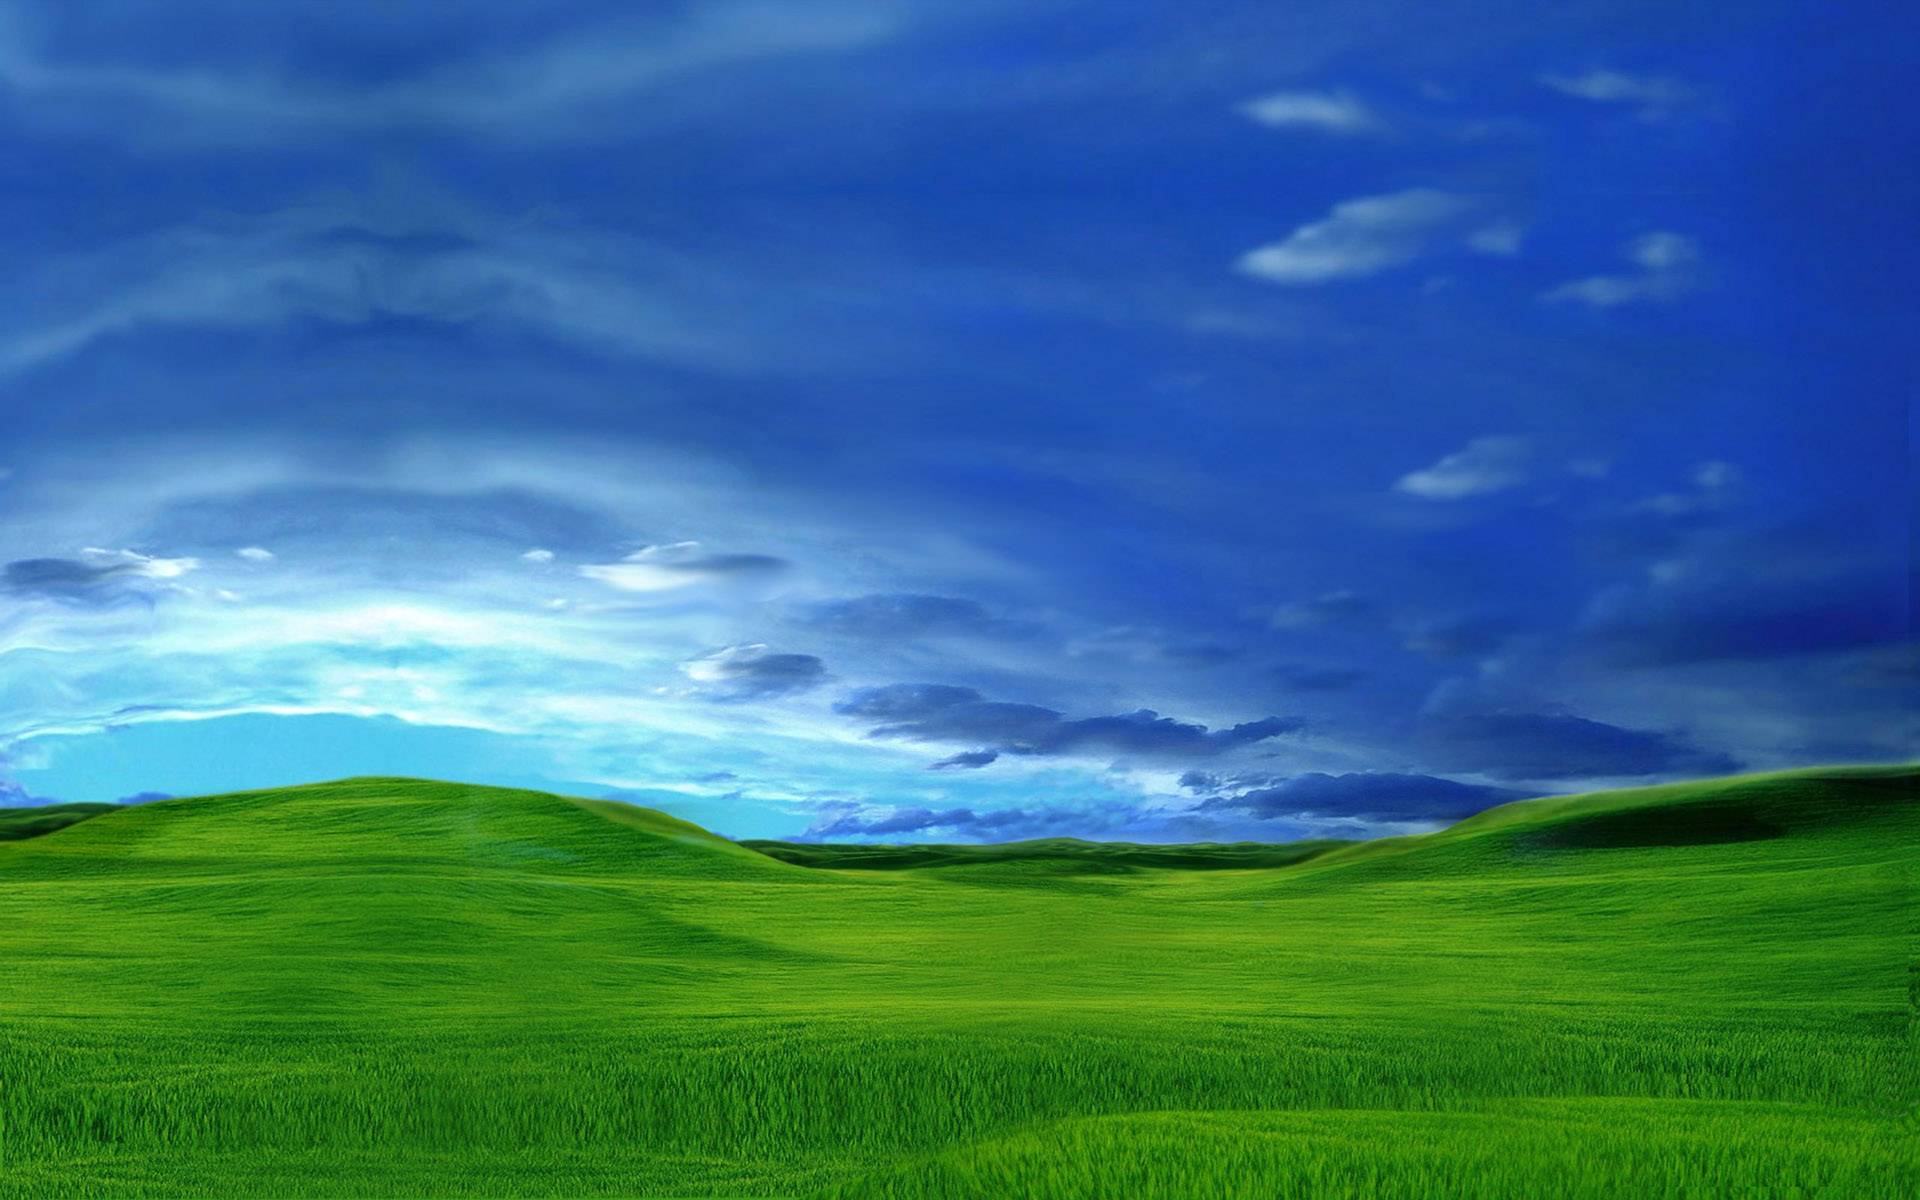 in windows xp style 1920 x 1200 landscape photography miriadna